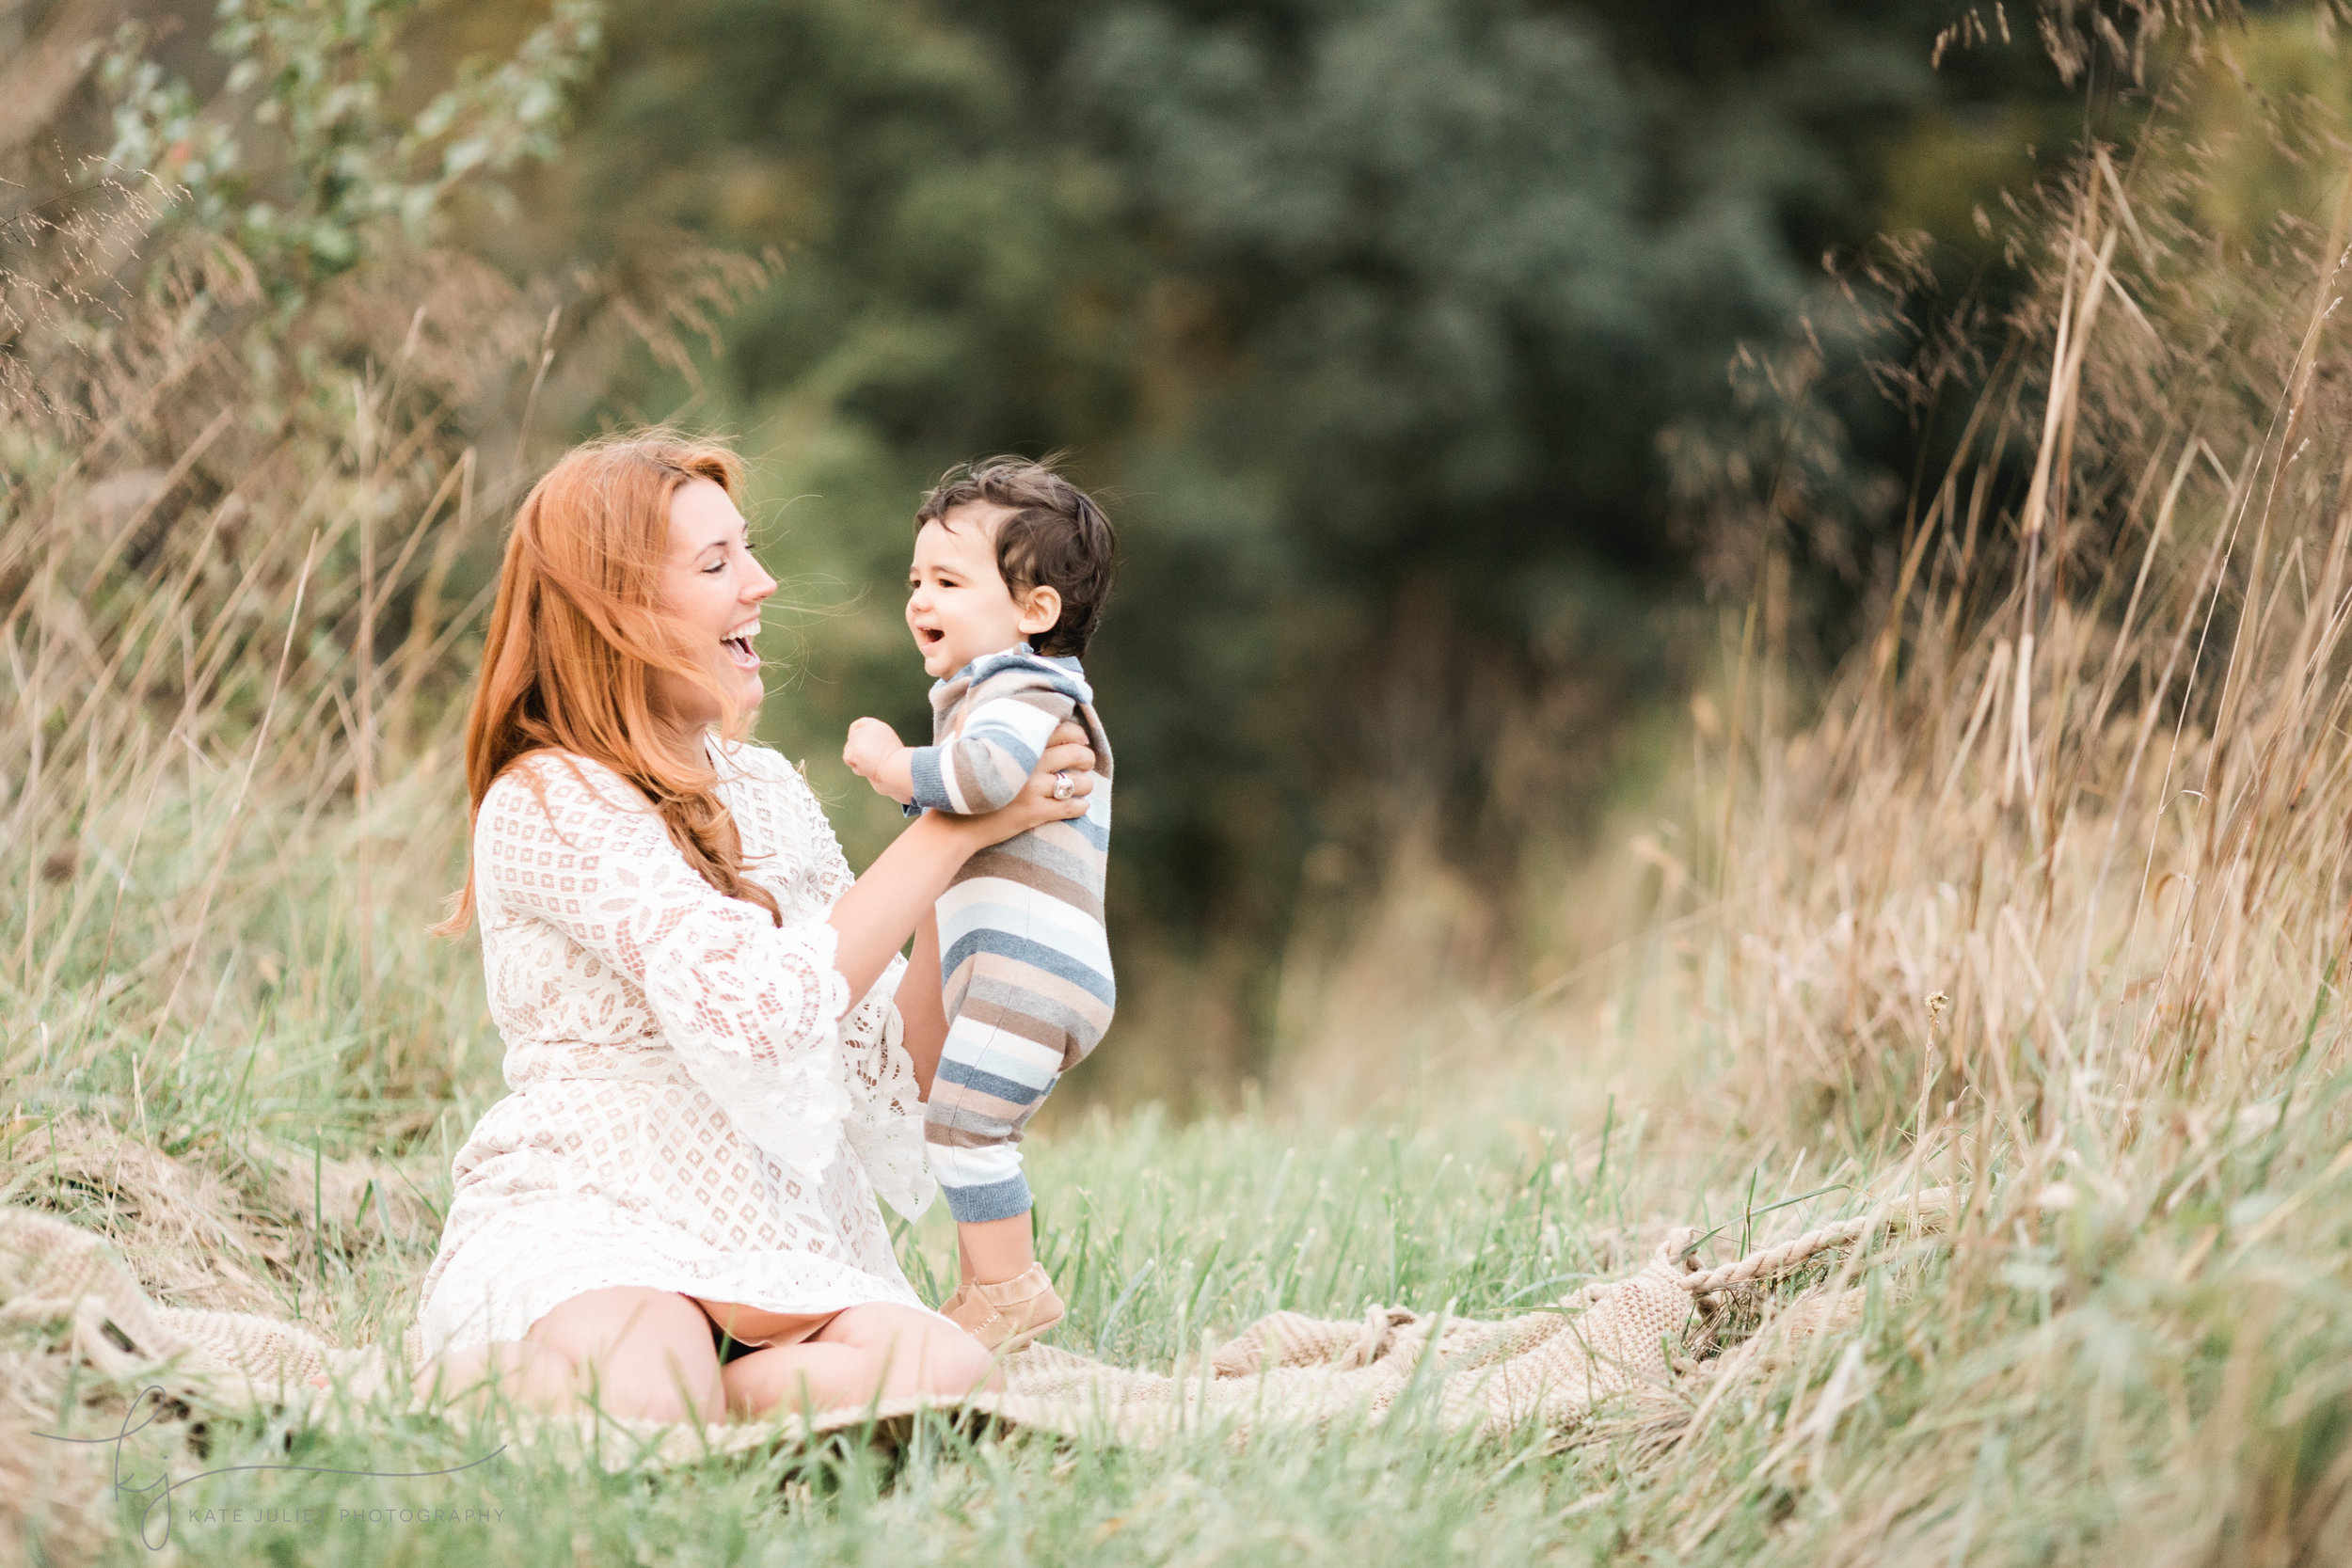 kate_juliet_photography_brittany-and-baron_baby_web-21.jpg